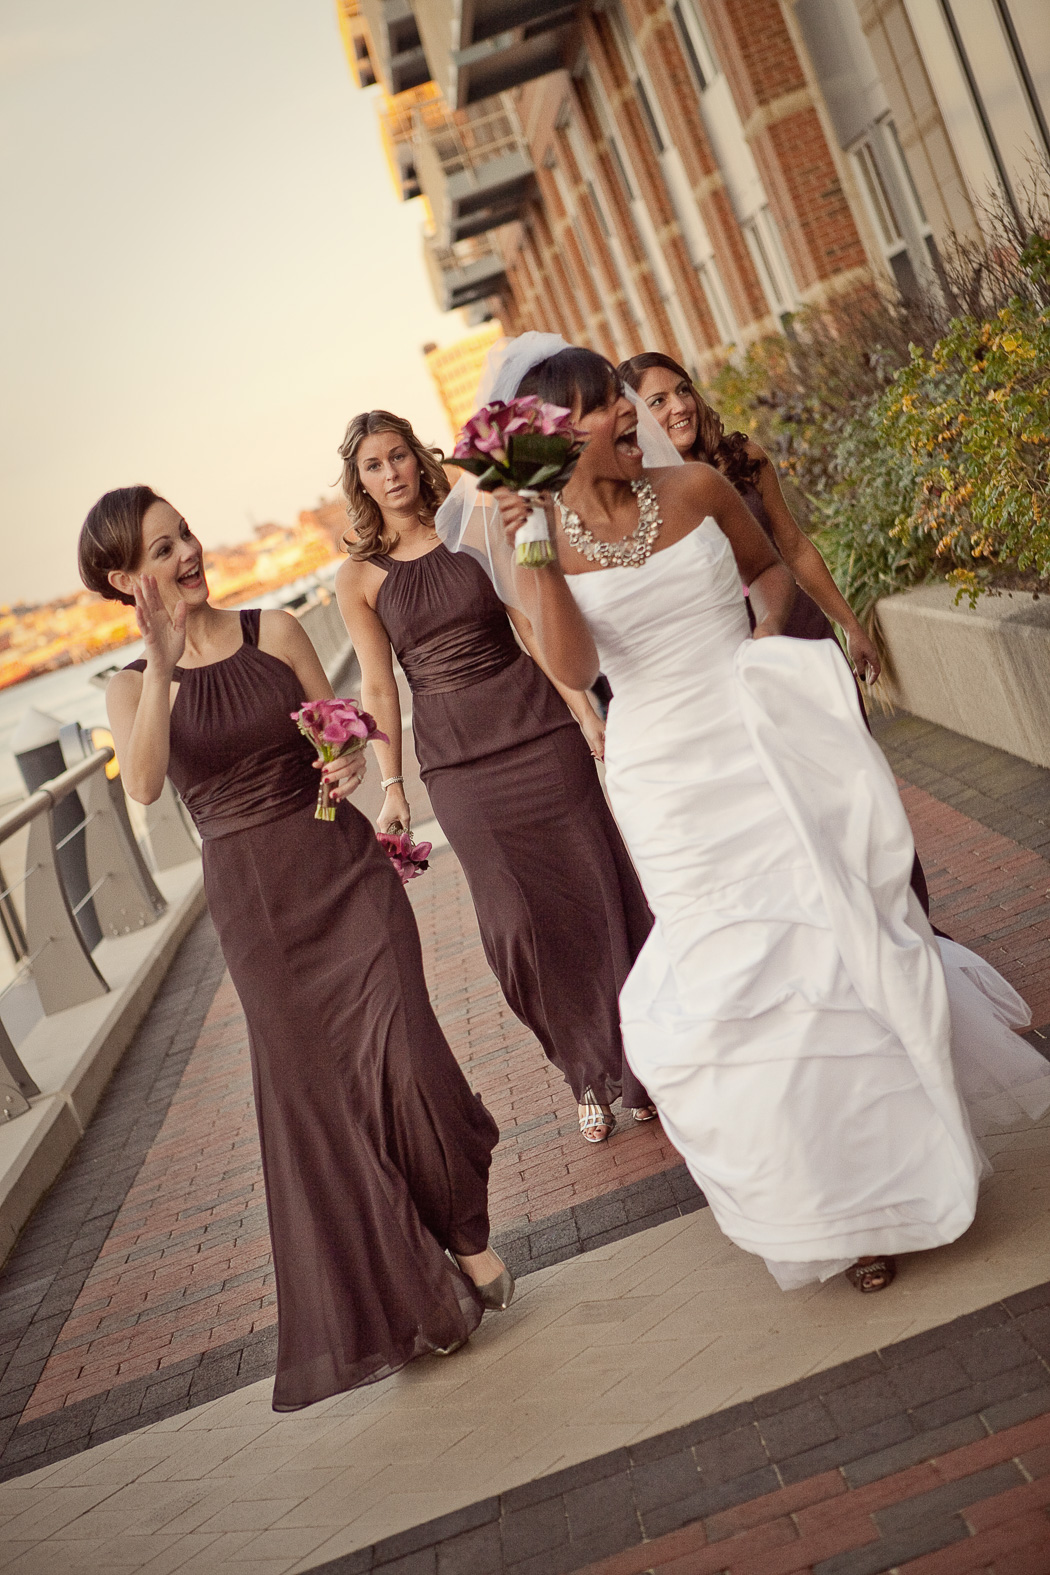 Weddings battery wharf hotel in boston ma for Wedding videographers in ma